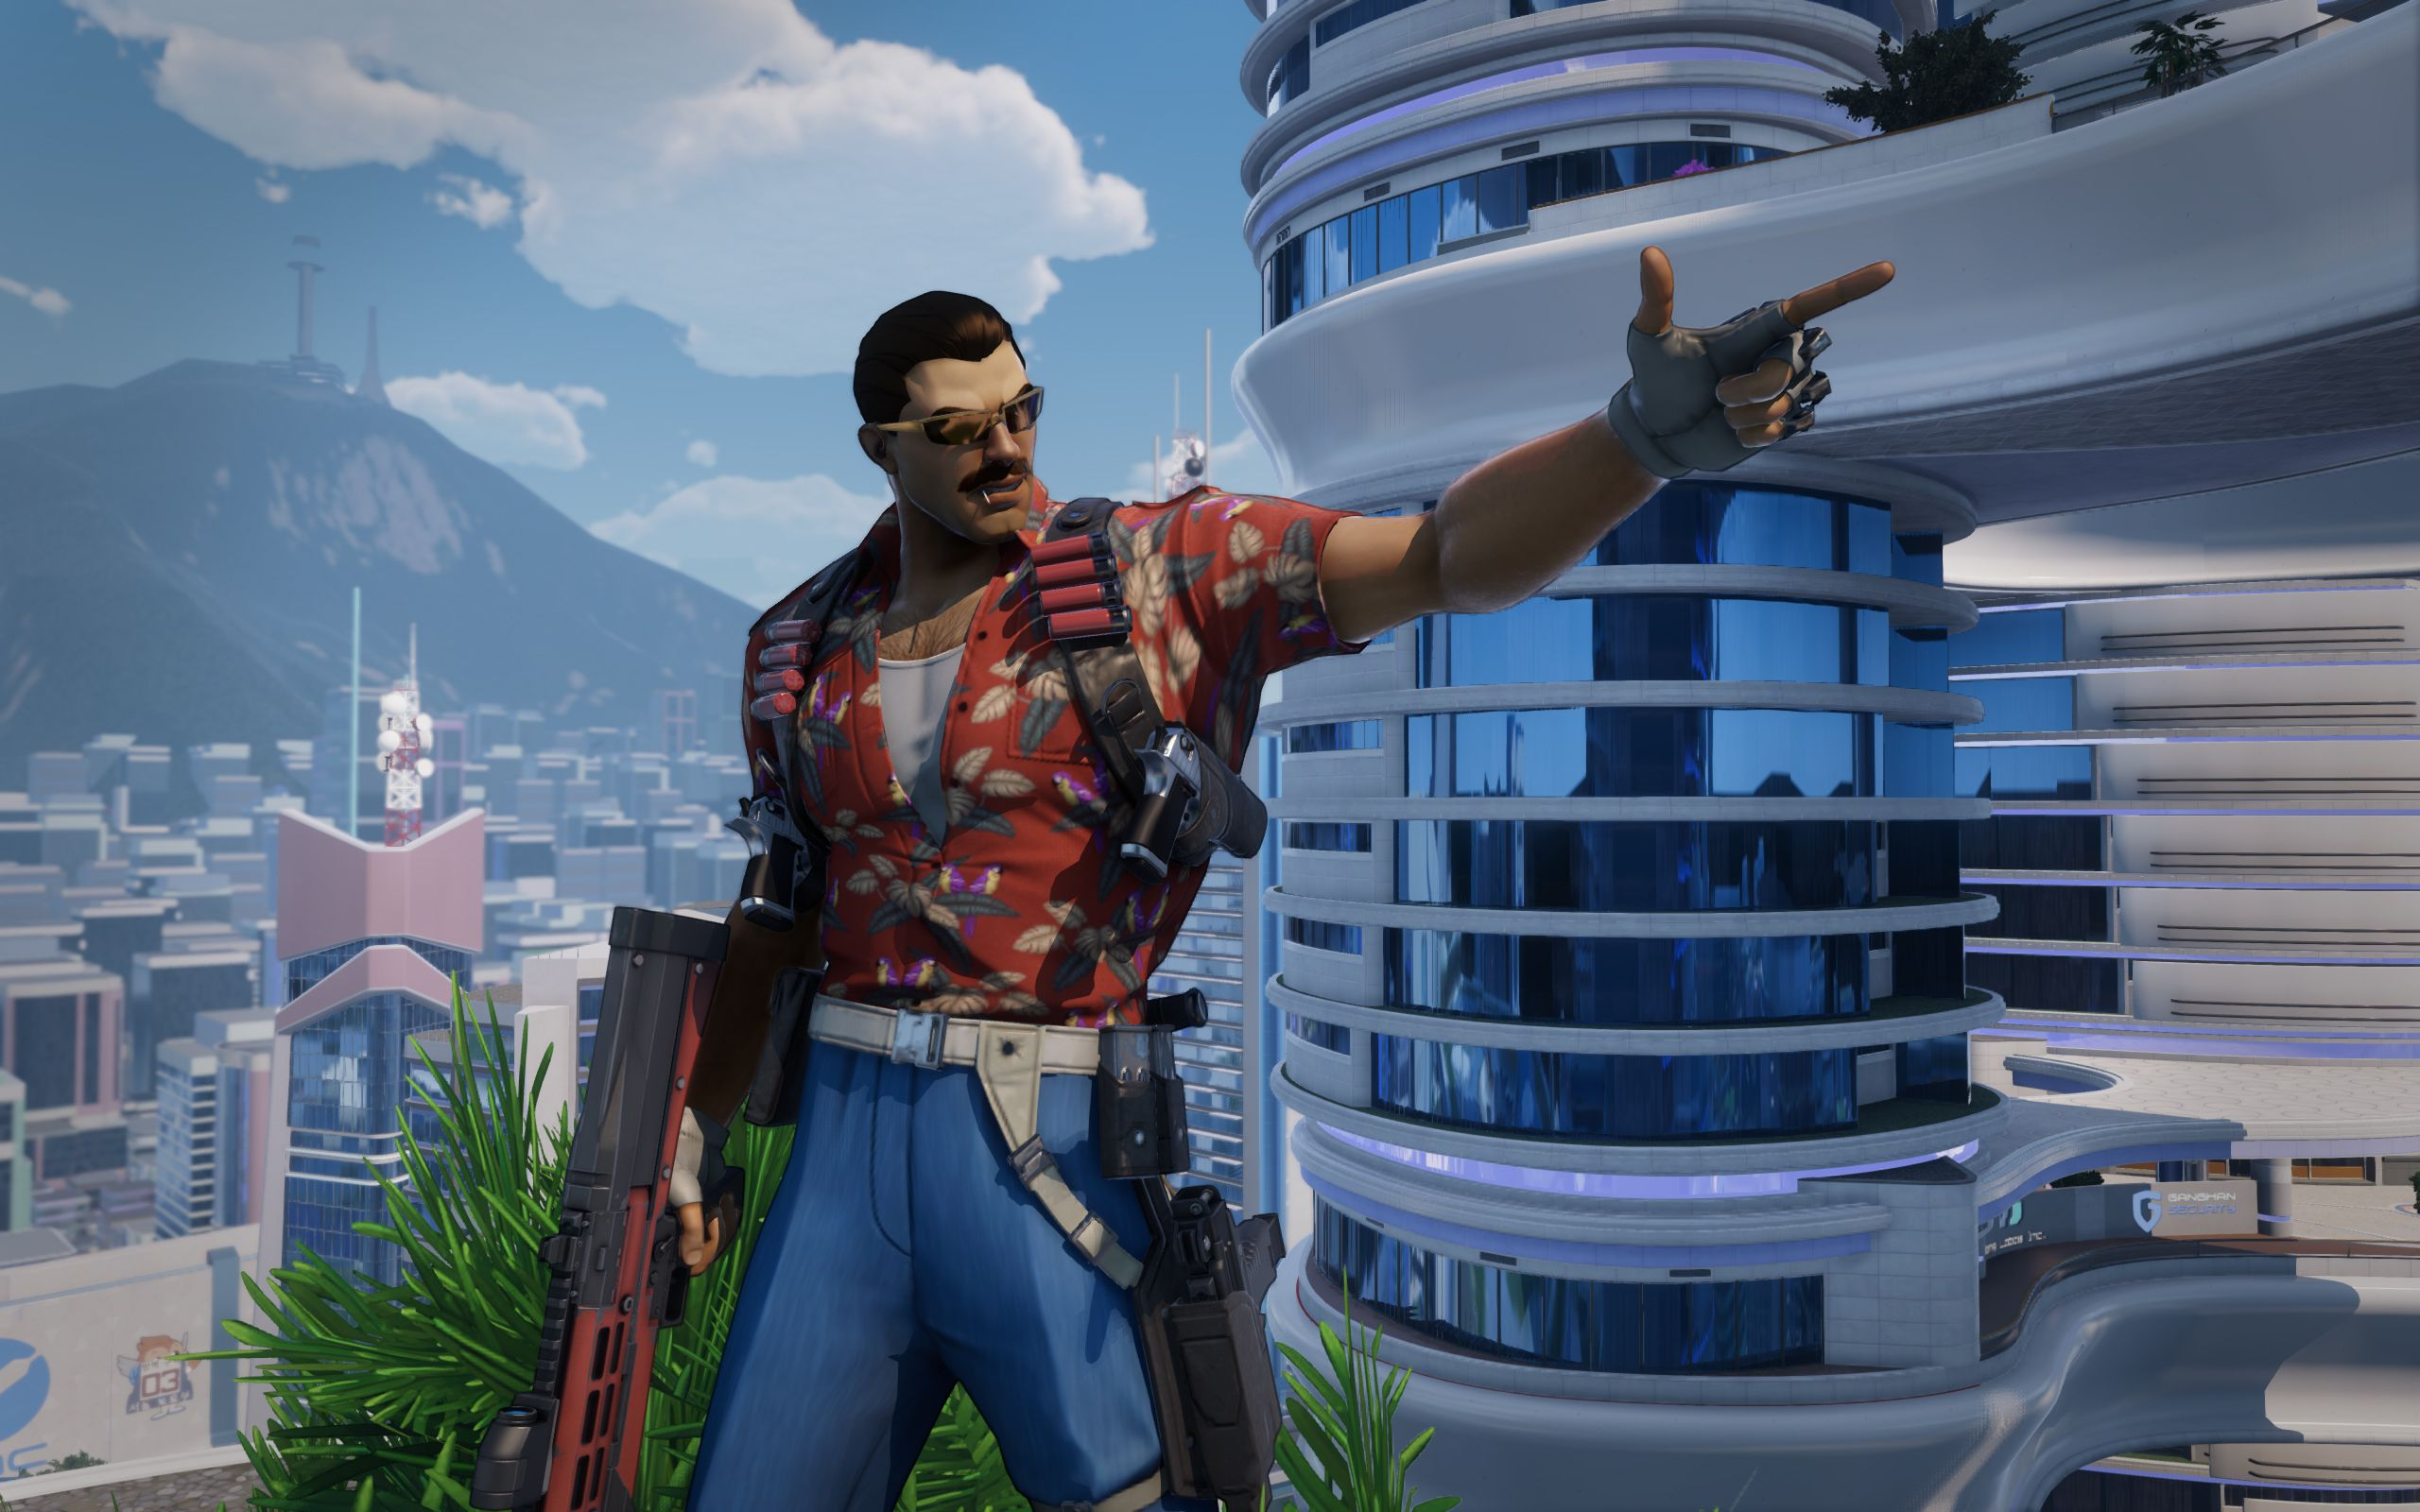 Agents of Mayhem Cheats: Unlimited Health, Money, Shield